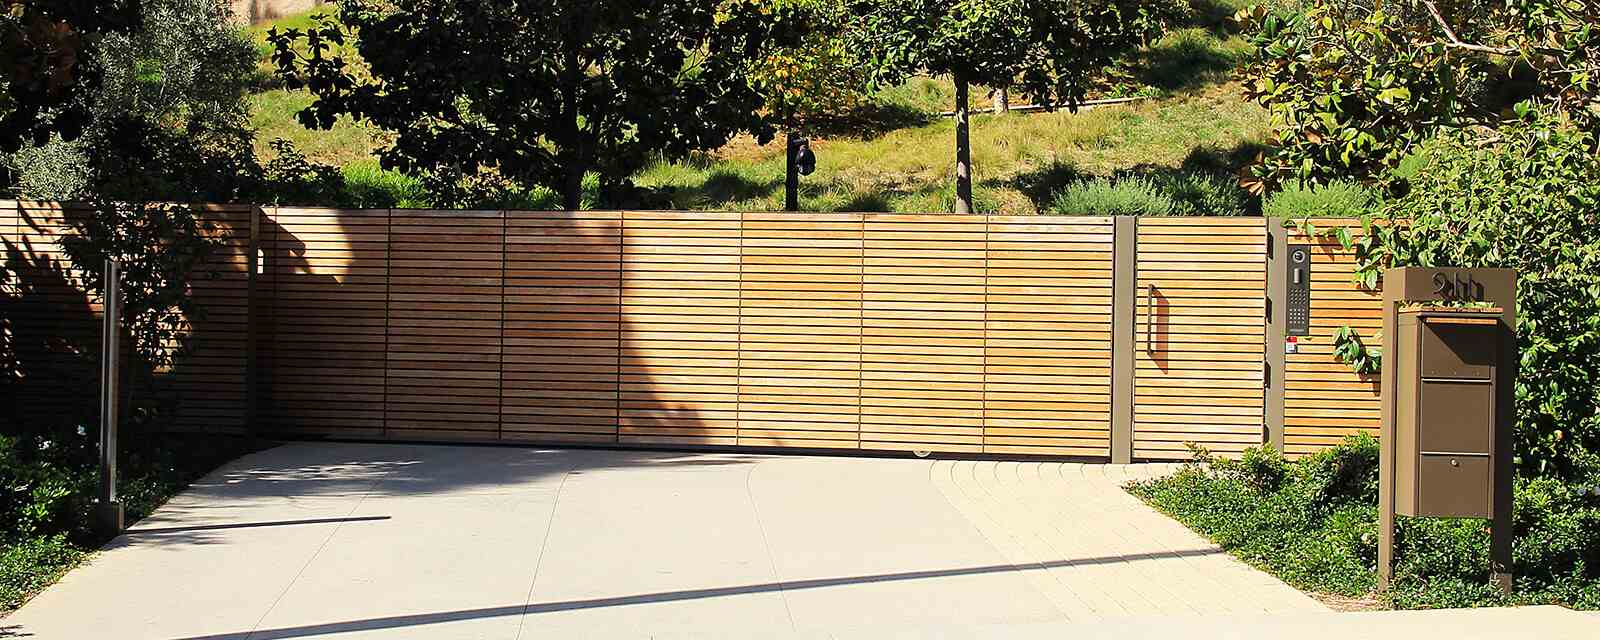 Sustainable teak single slide auto gate and hinged pedestrian gate